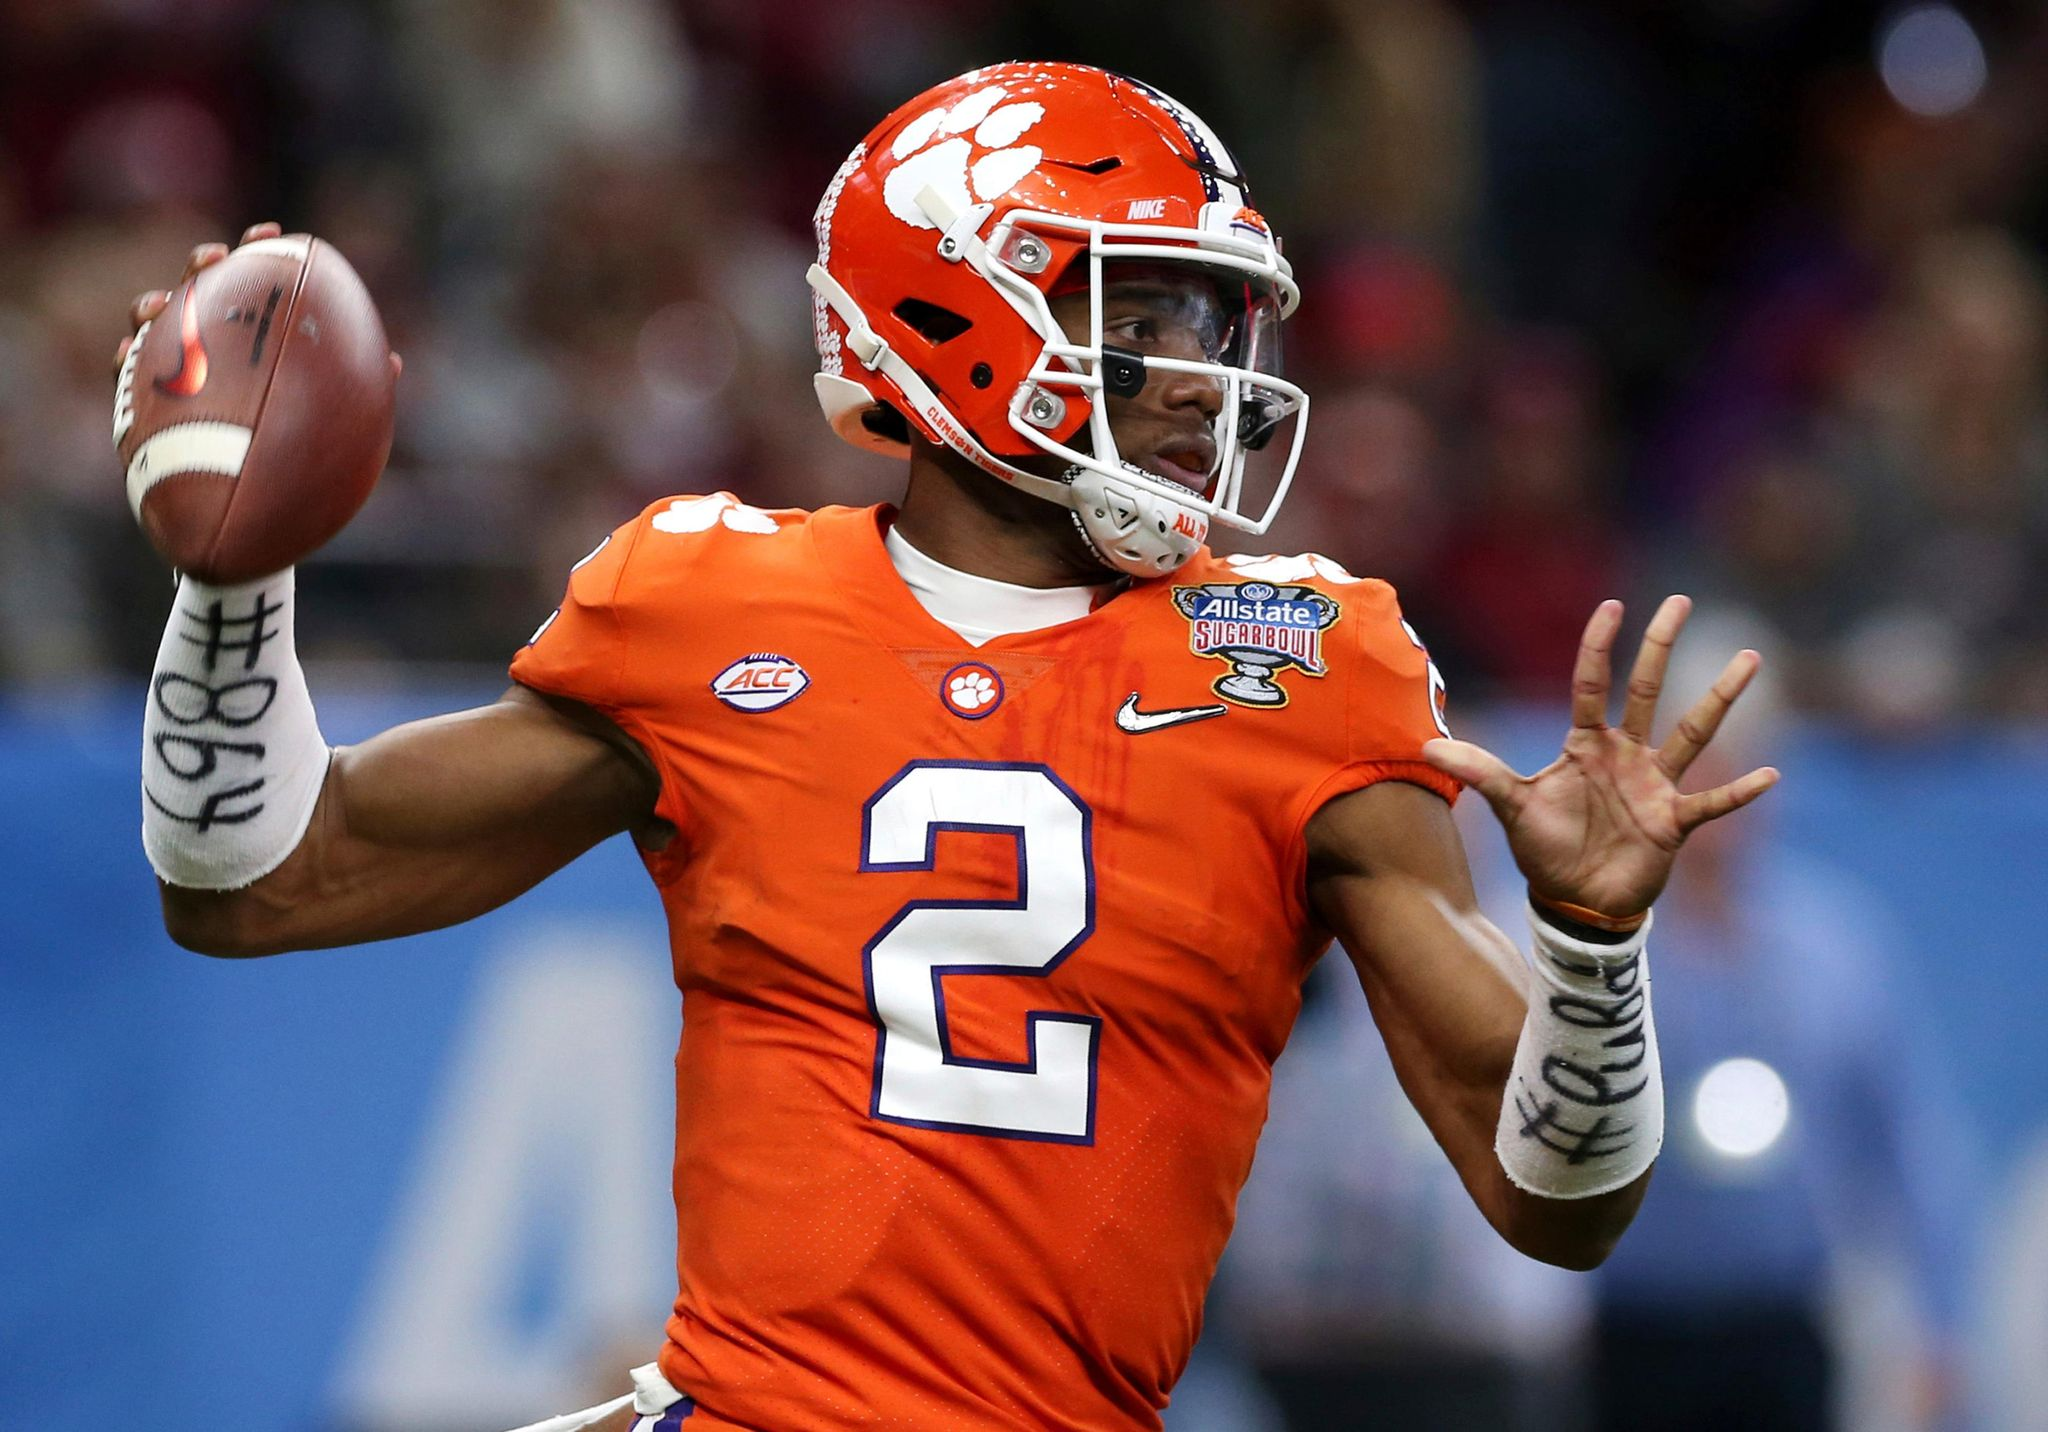 Fans for No. 2 Clemson eager to see QB backup Lawrence - Washington ... 09f59a976